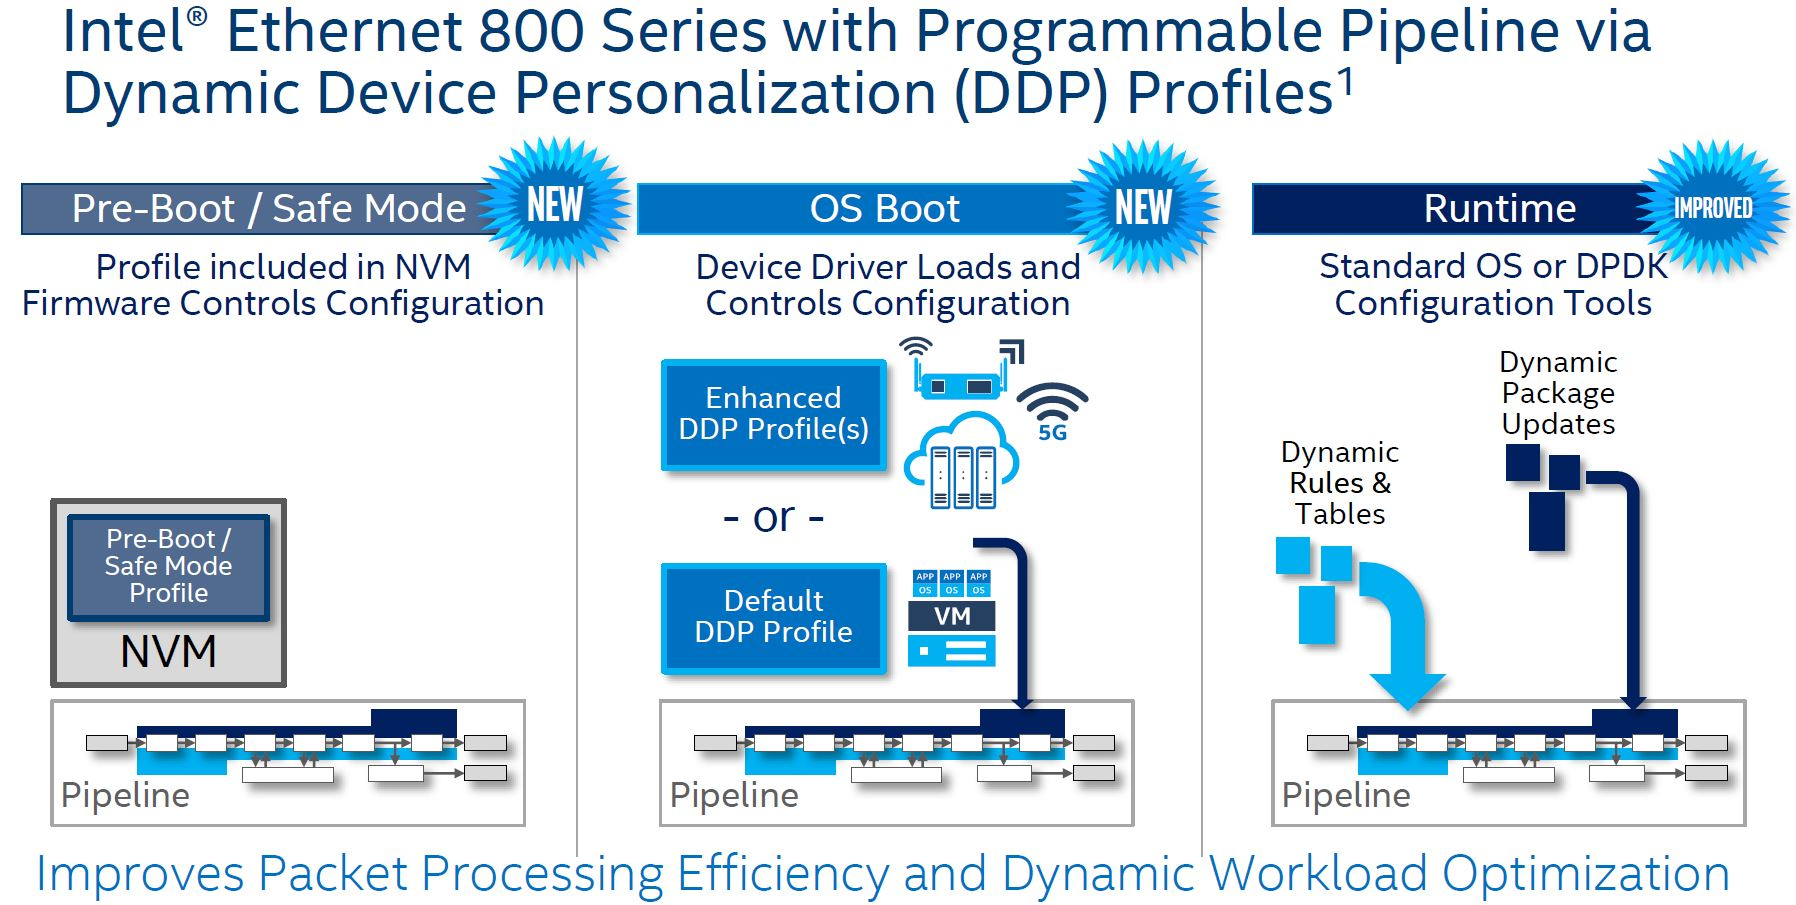 Intel Ethernet 800 Programmable Example 2